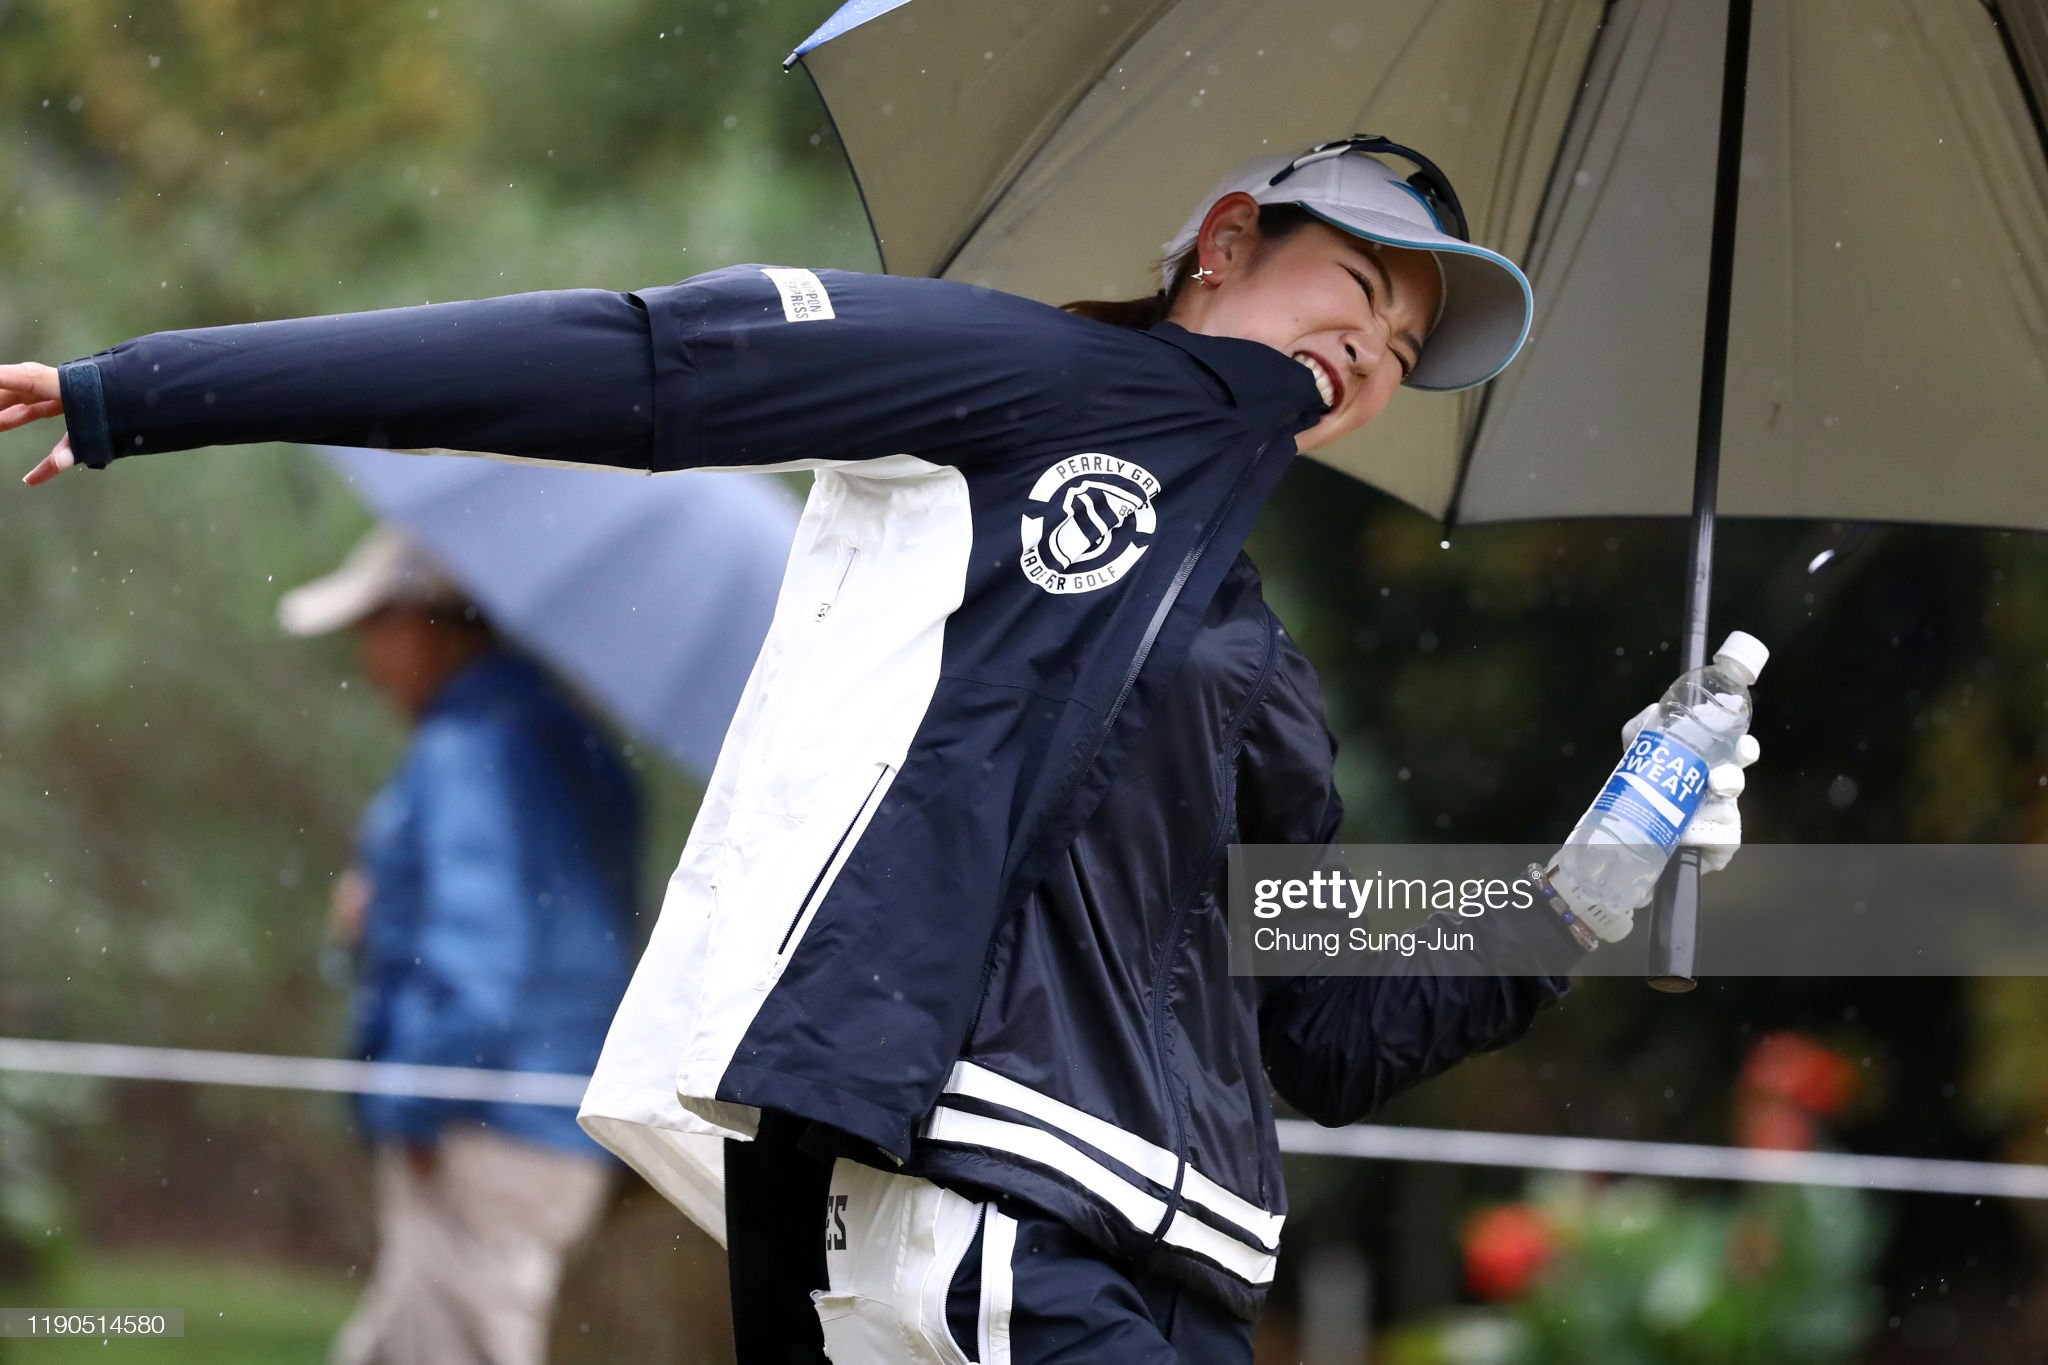 https://media.gettyimages.com/photos/erika-hara-of-japan-wears-a-rain-jacket-after-hitting-a-tee-shot-on-picture-id1190514580?s=2048x2048